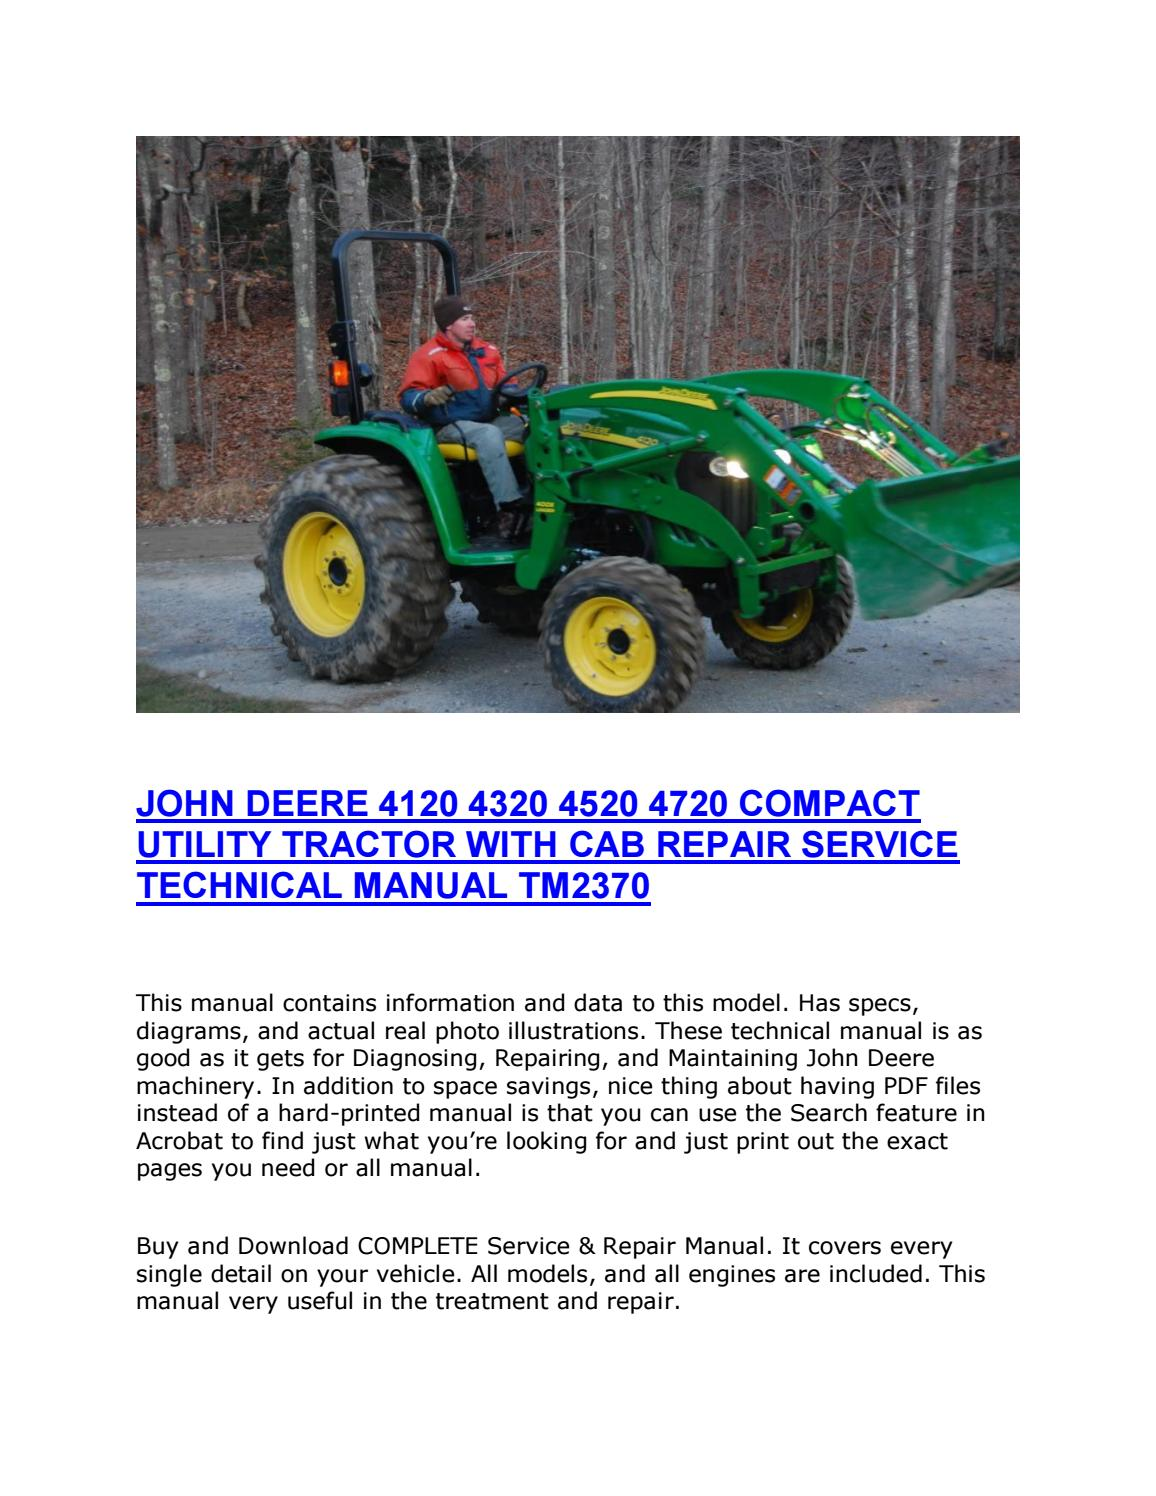 John Deere 4120 4320 4520 4720 Compact Utility Tractor With Cab Repair Service Technical Manual